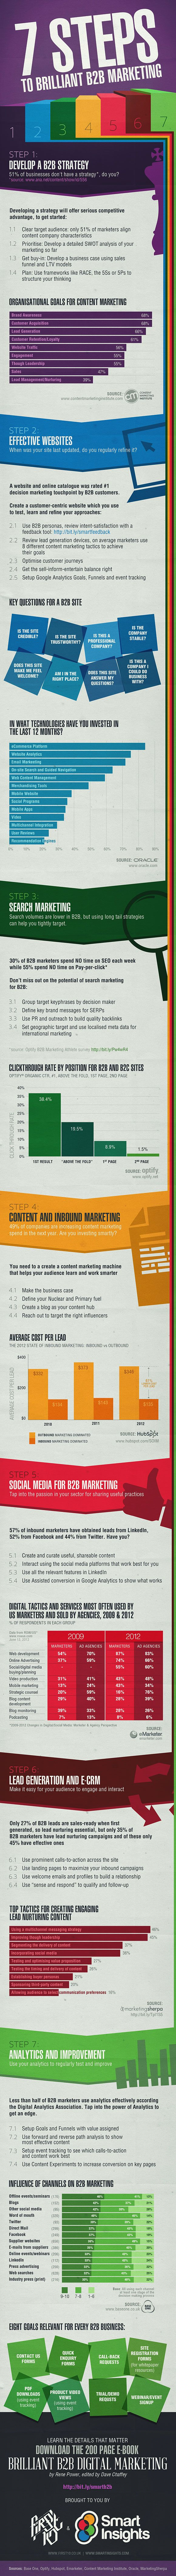 Our infographic showing the latest research on how companies are using inbound marketing,